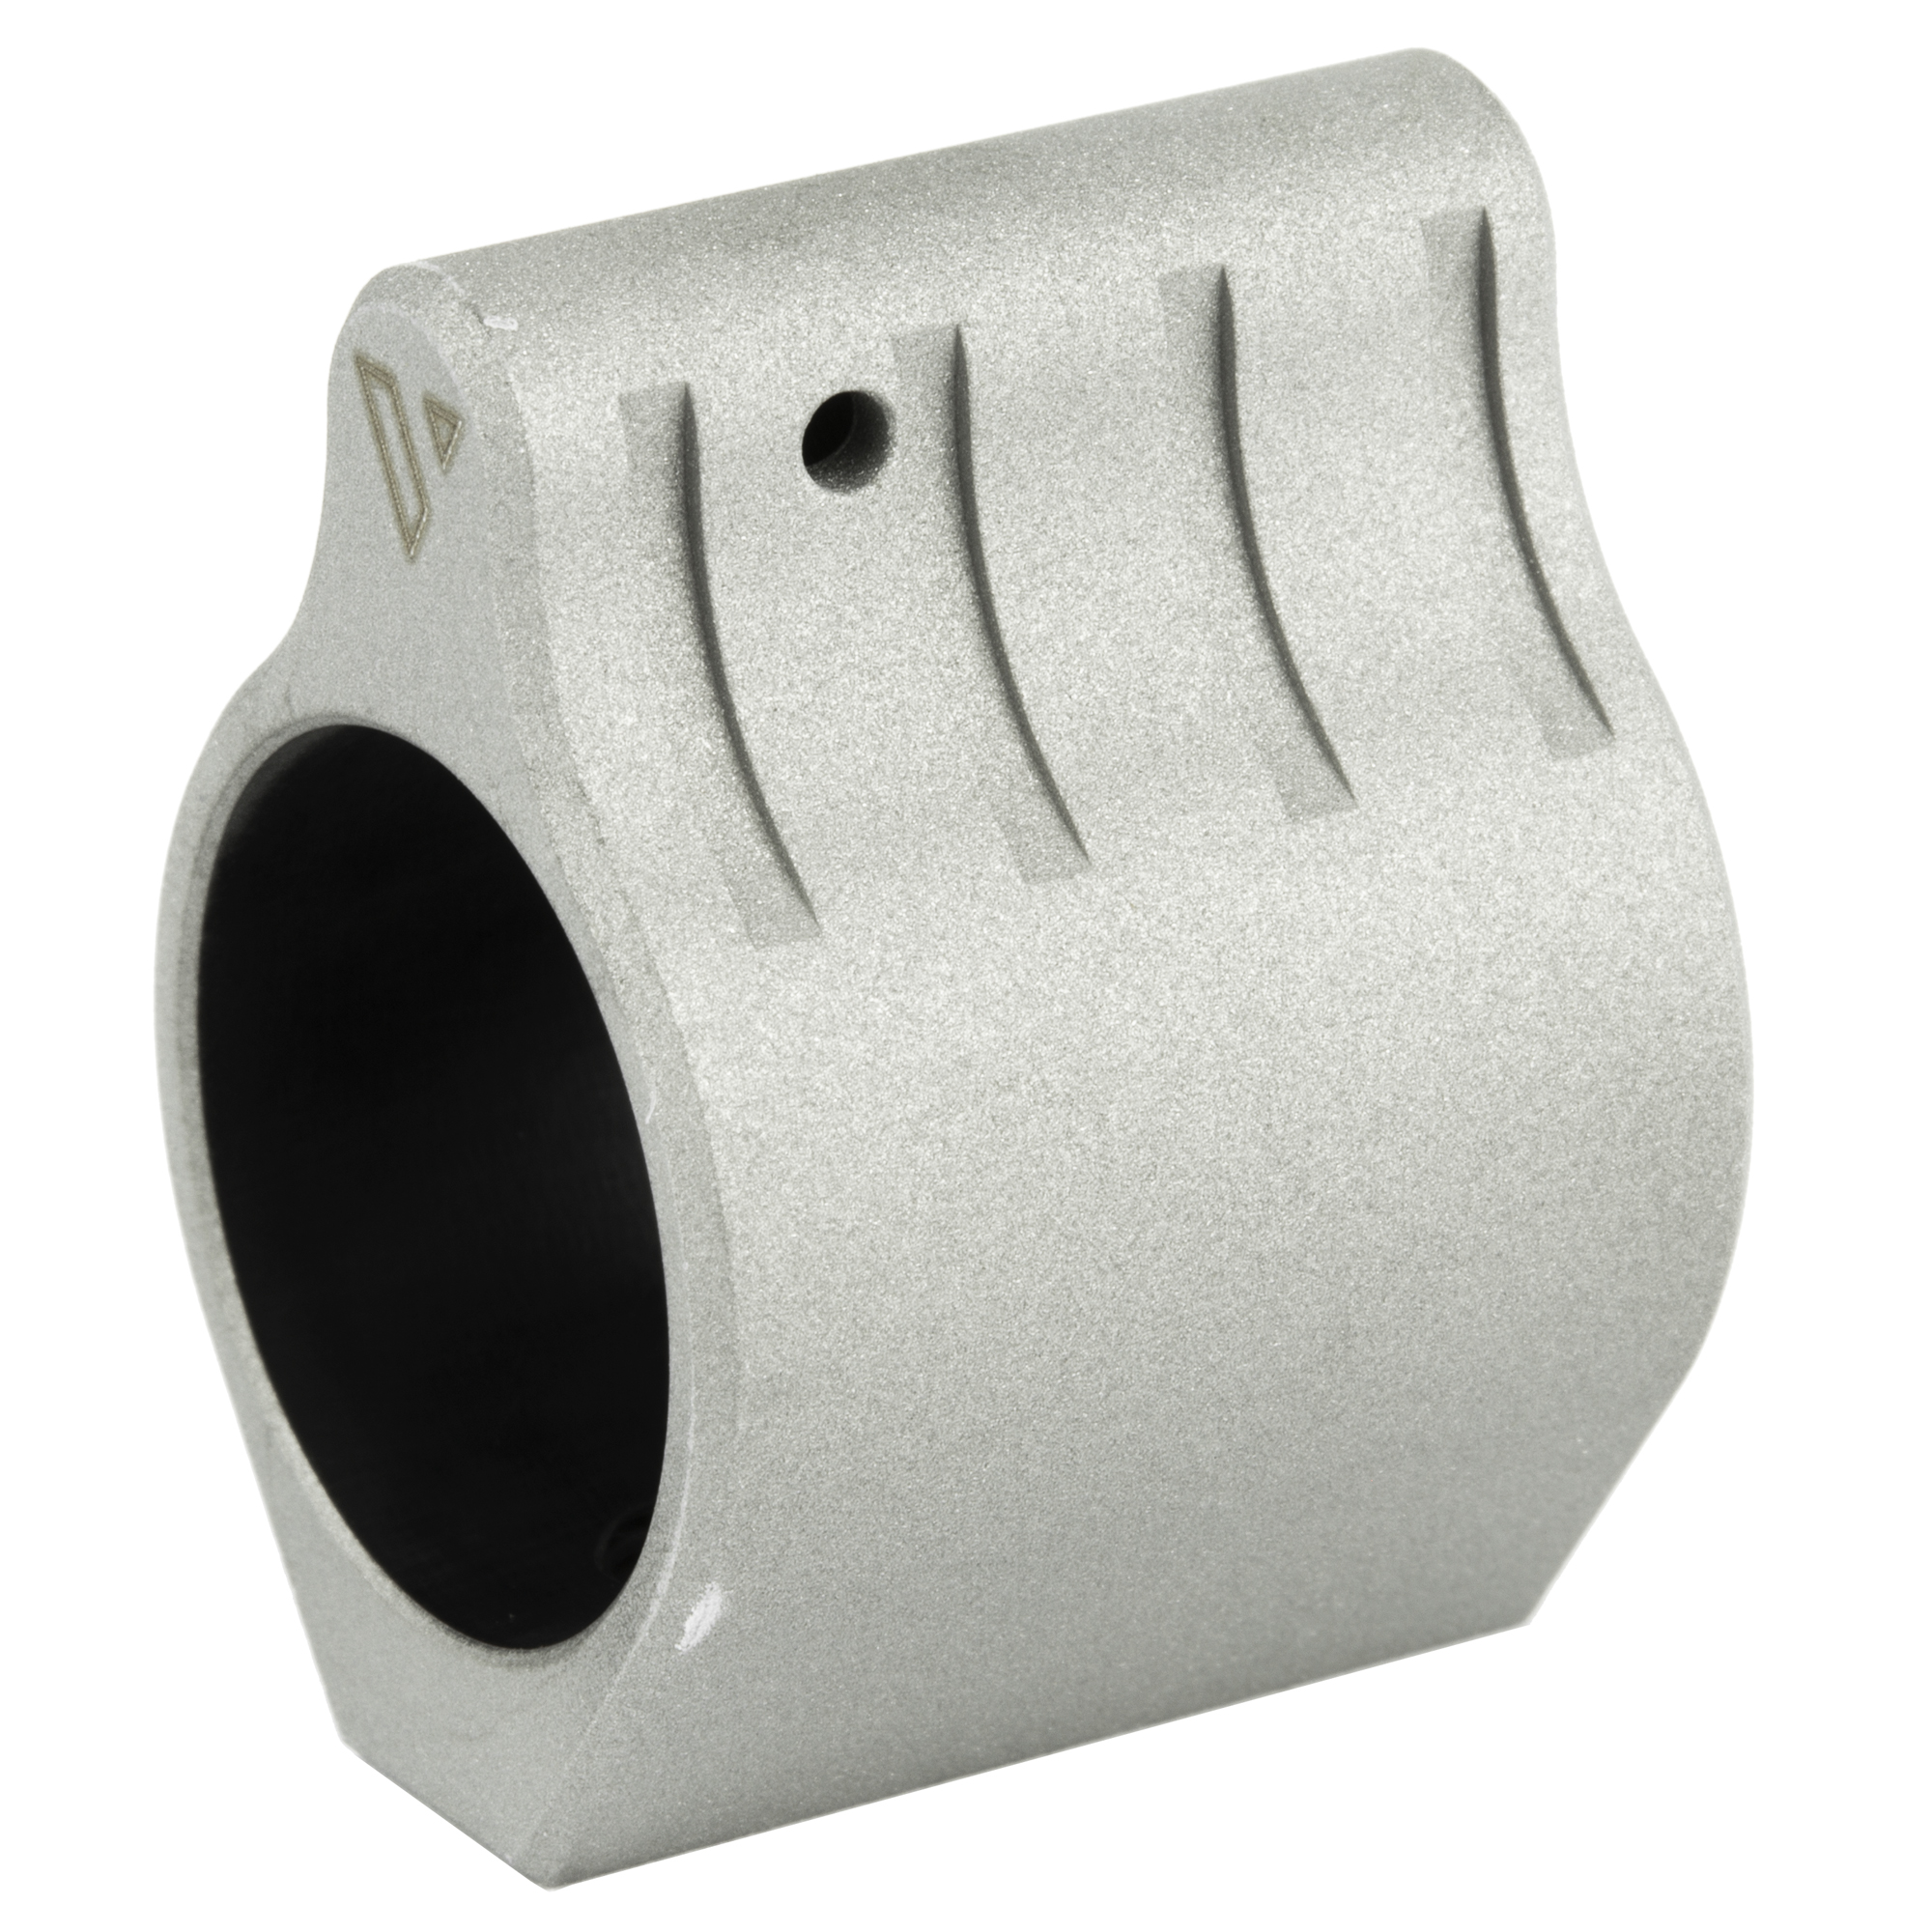 """Built to the tightest tolerances"""" the VLTOR low profile"""" set screw gas blocks are small enough to fit inside most rail systems. These gas blocks were designed to be used with a rail system/handguard that is mounted over the entire gas system."""